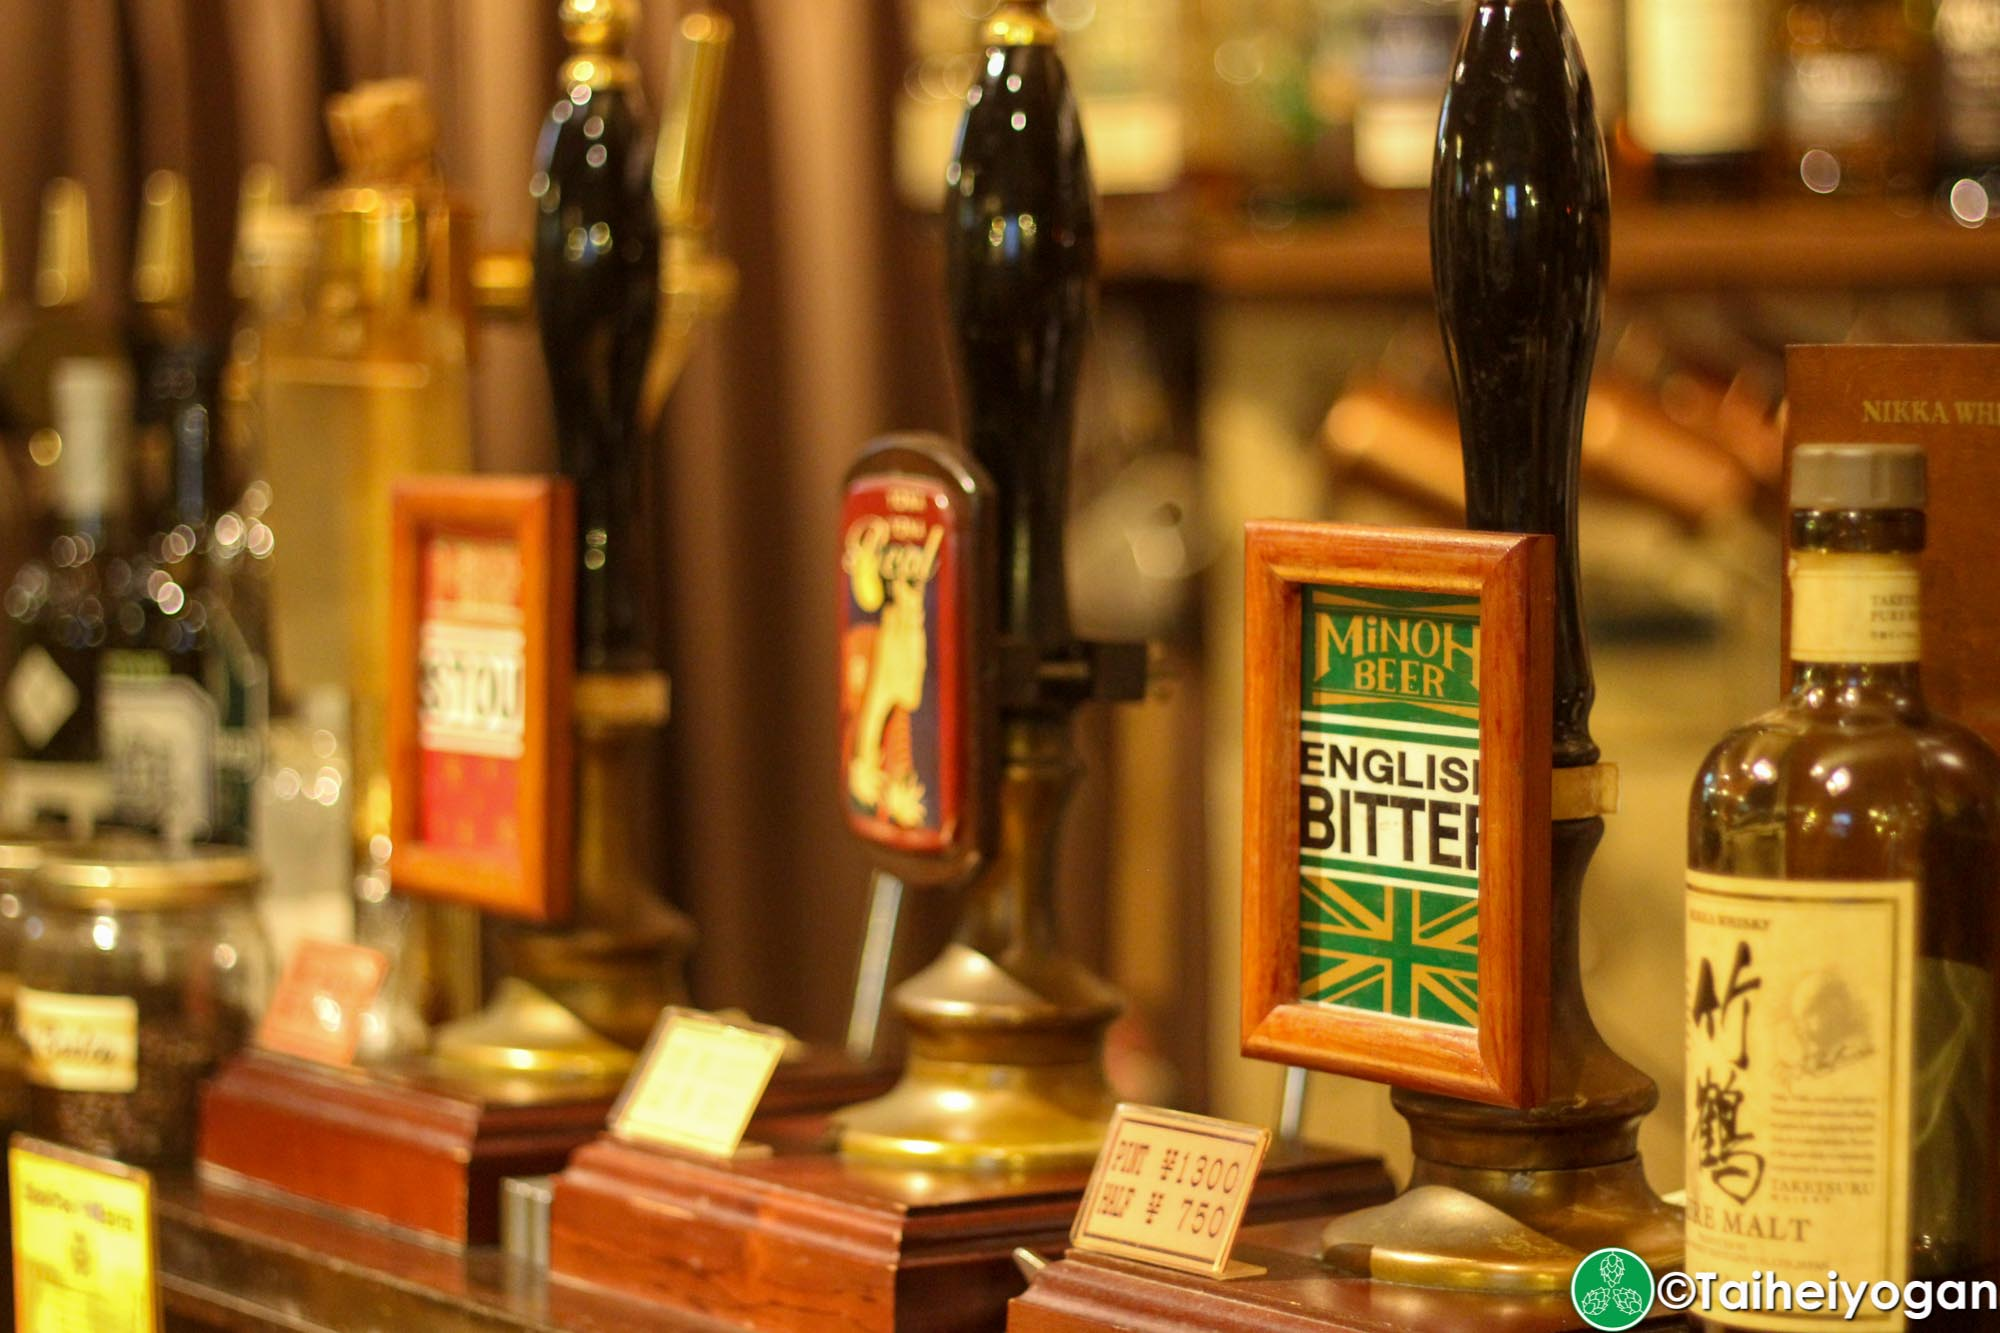 I's Public Ale House - Interior Bar - Beer Hand Pump